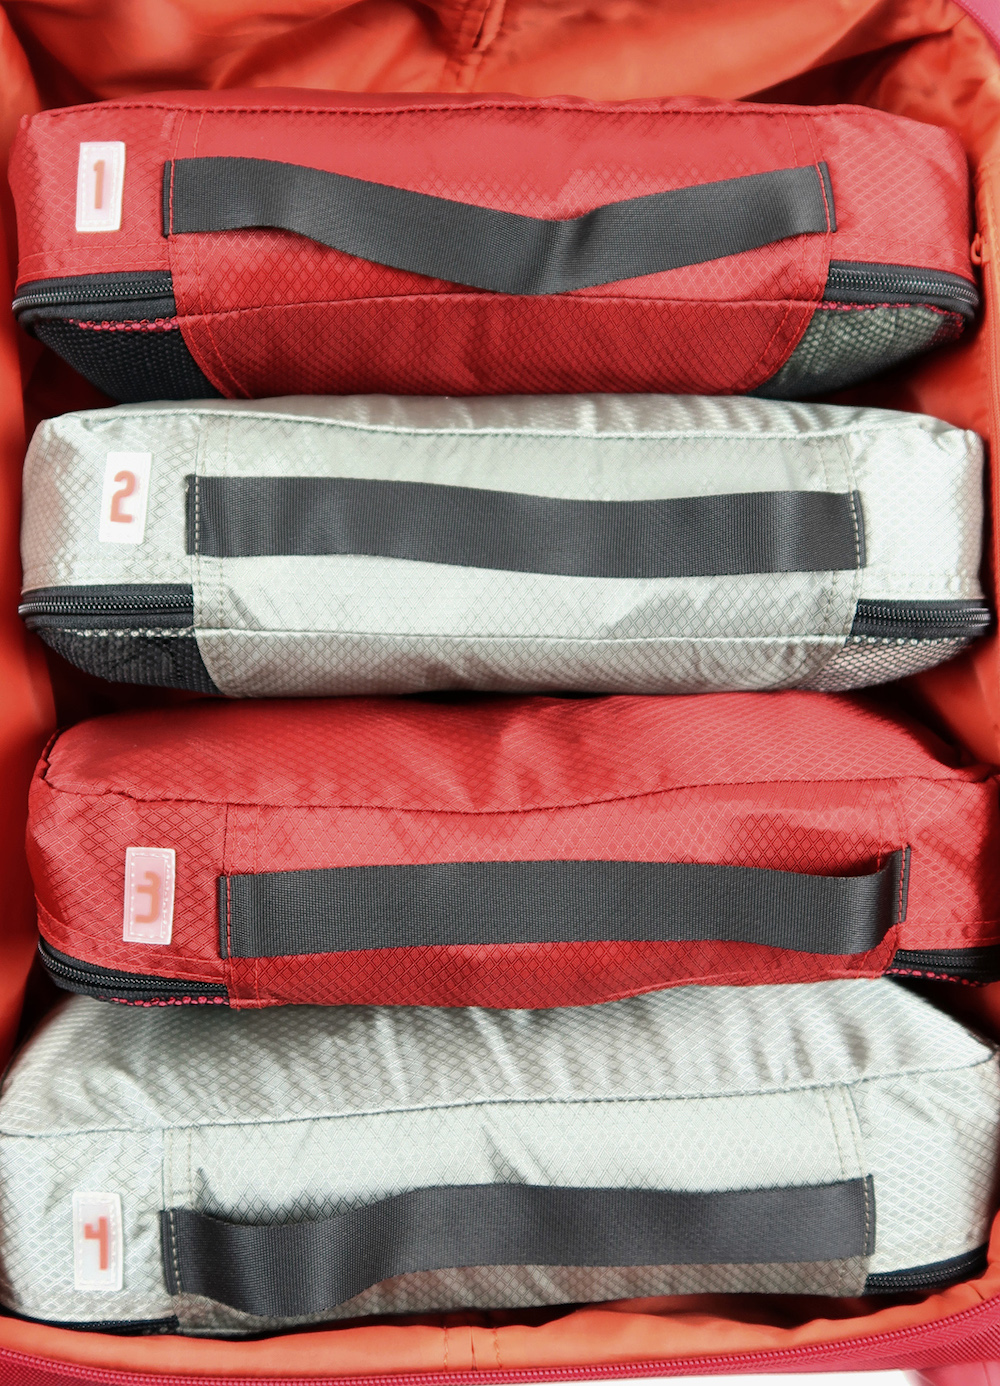 The ultimate packing cubes!